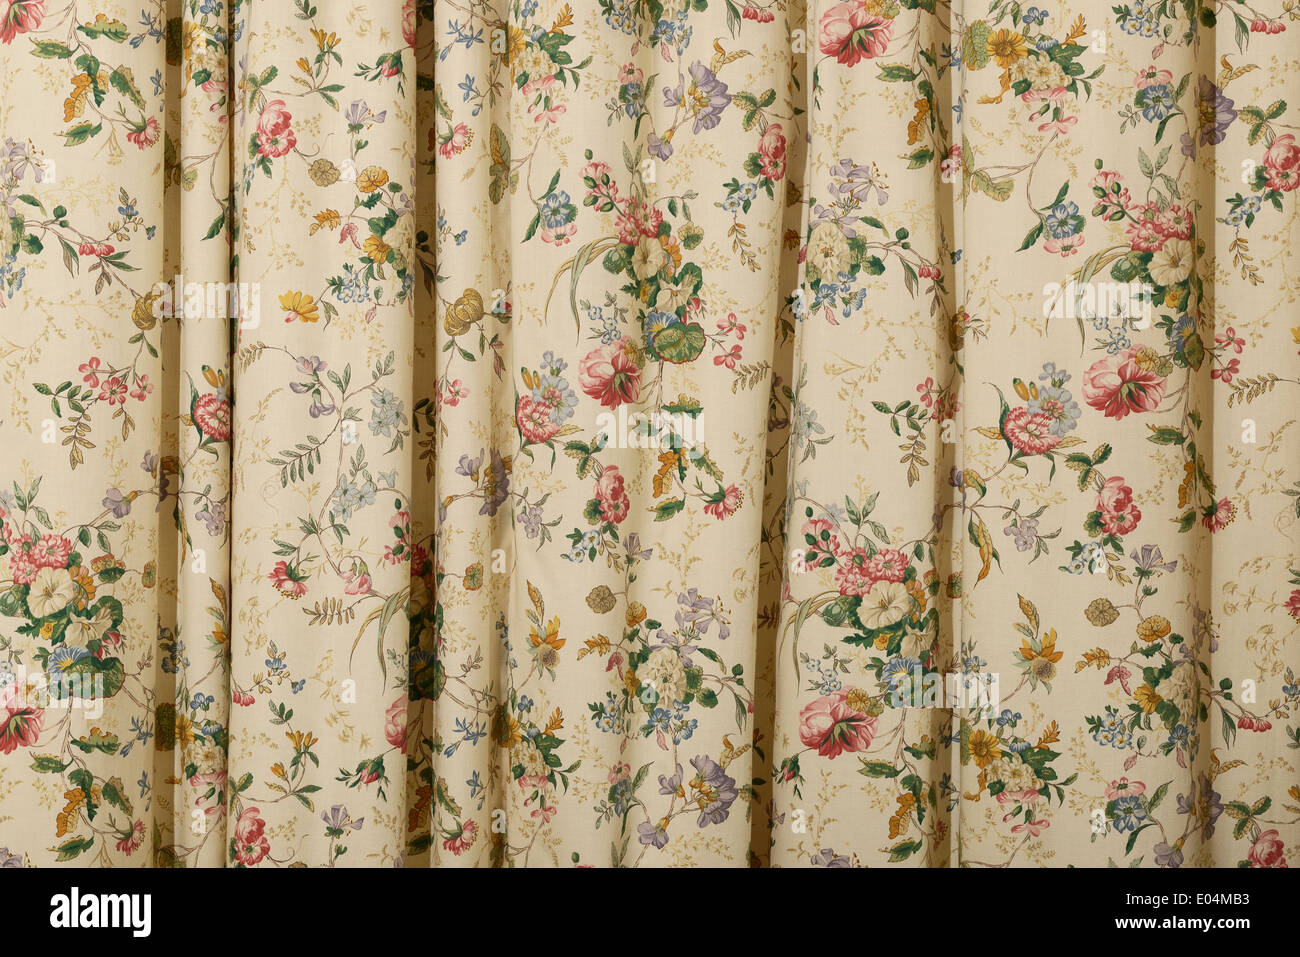 Floral chintz curtains - Stock Image